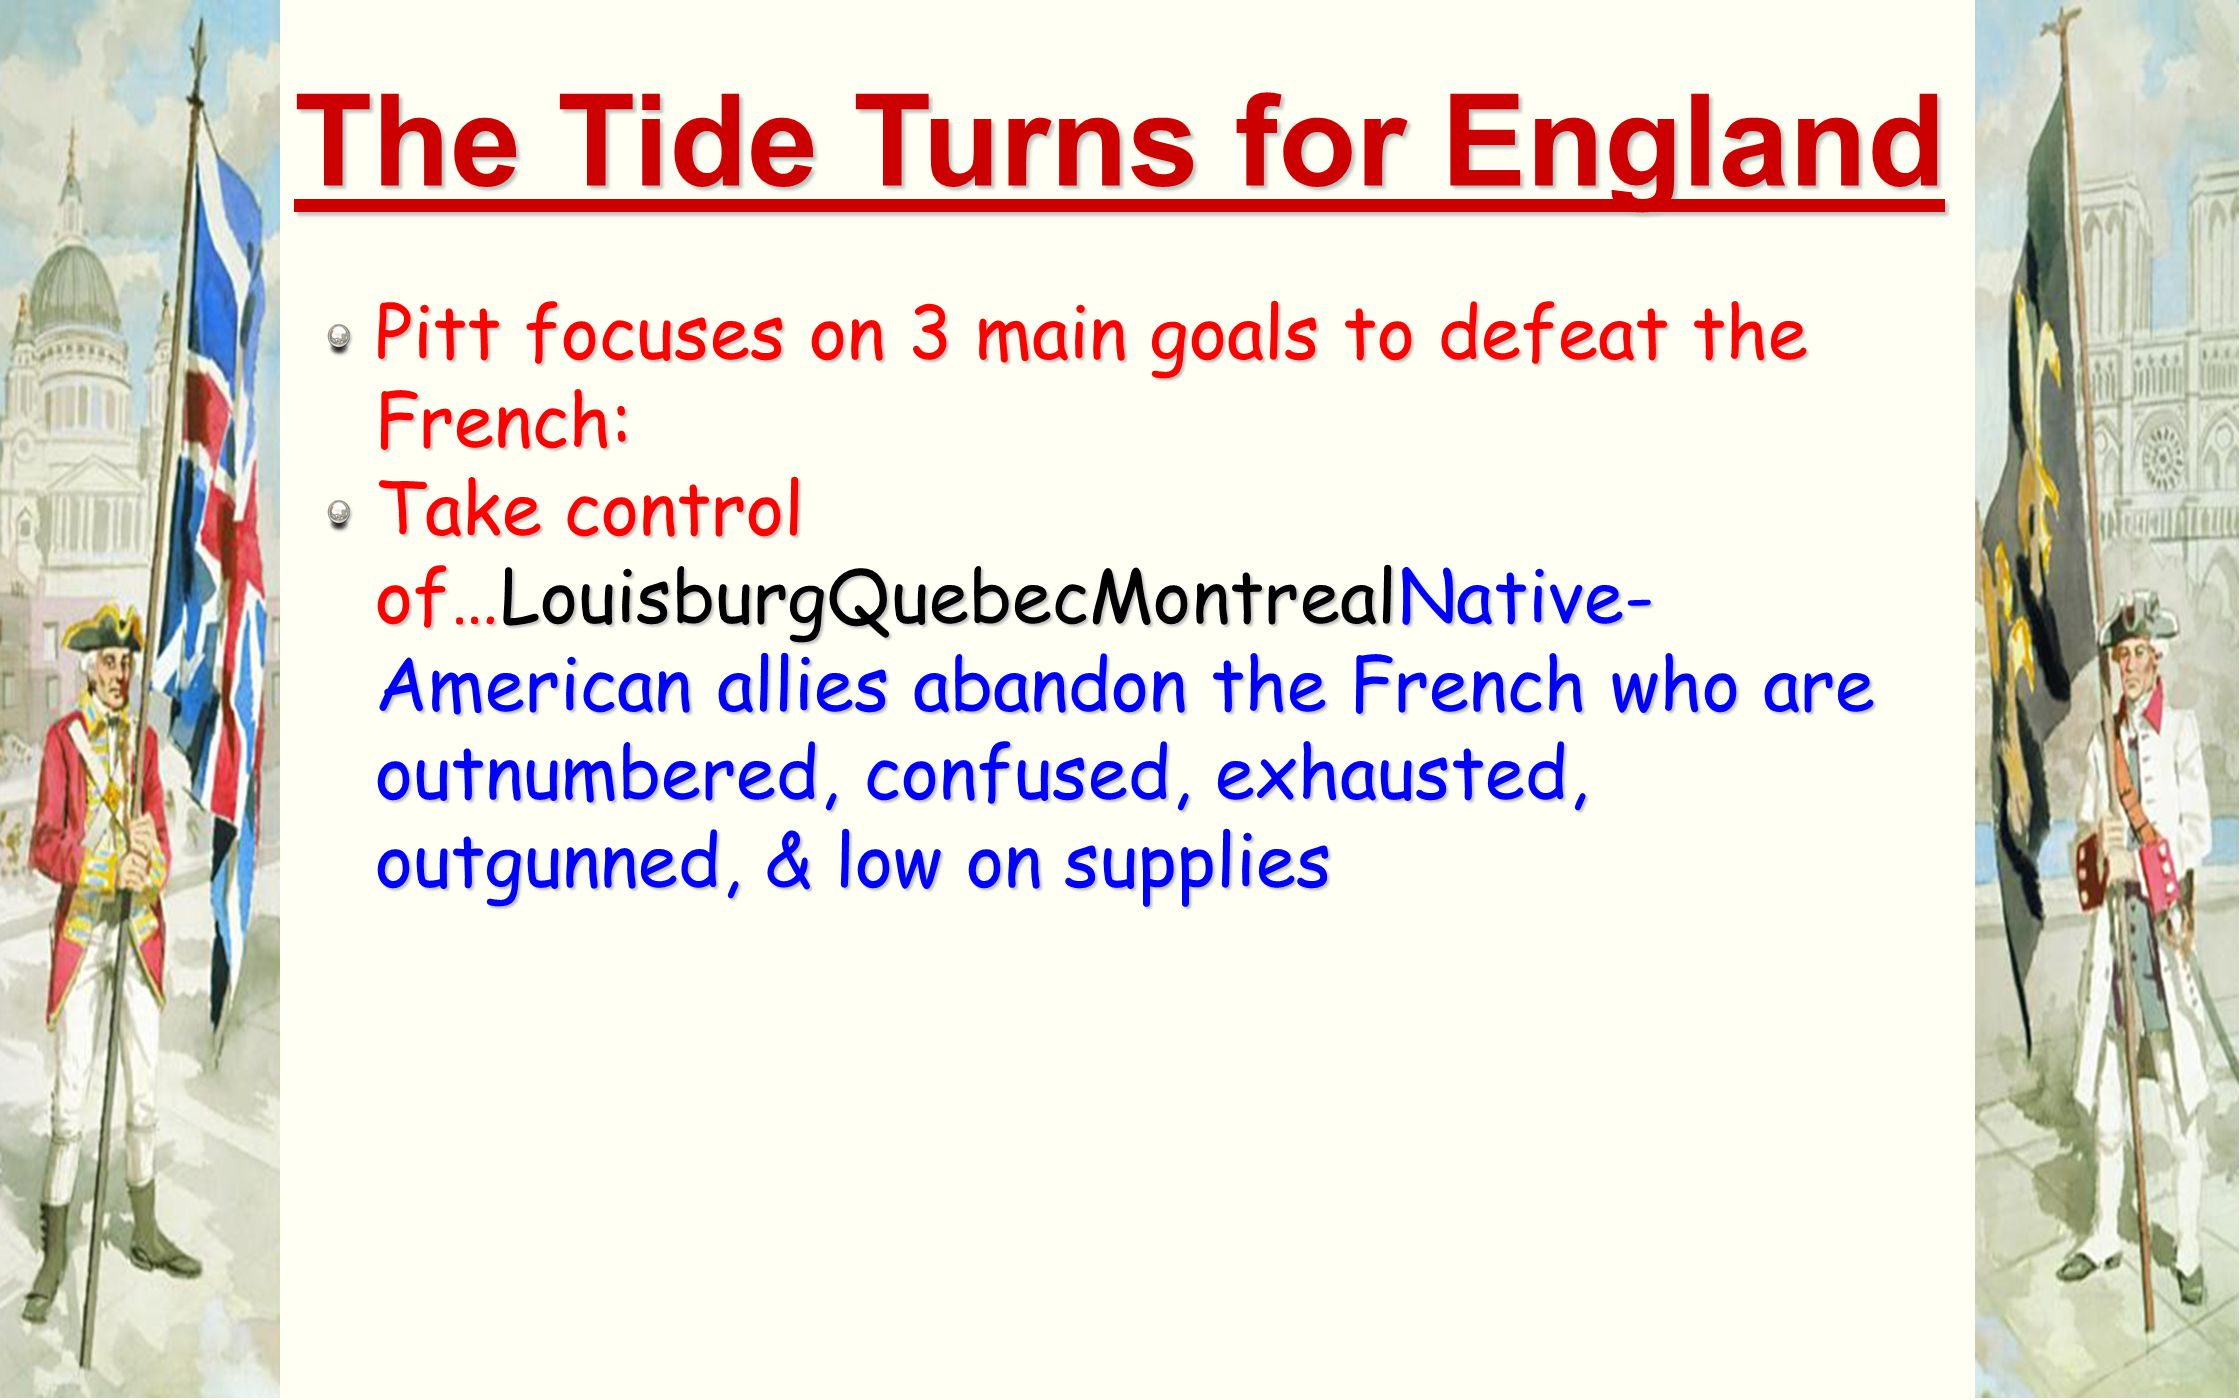 The Tide Turns for England